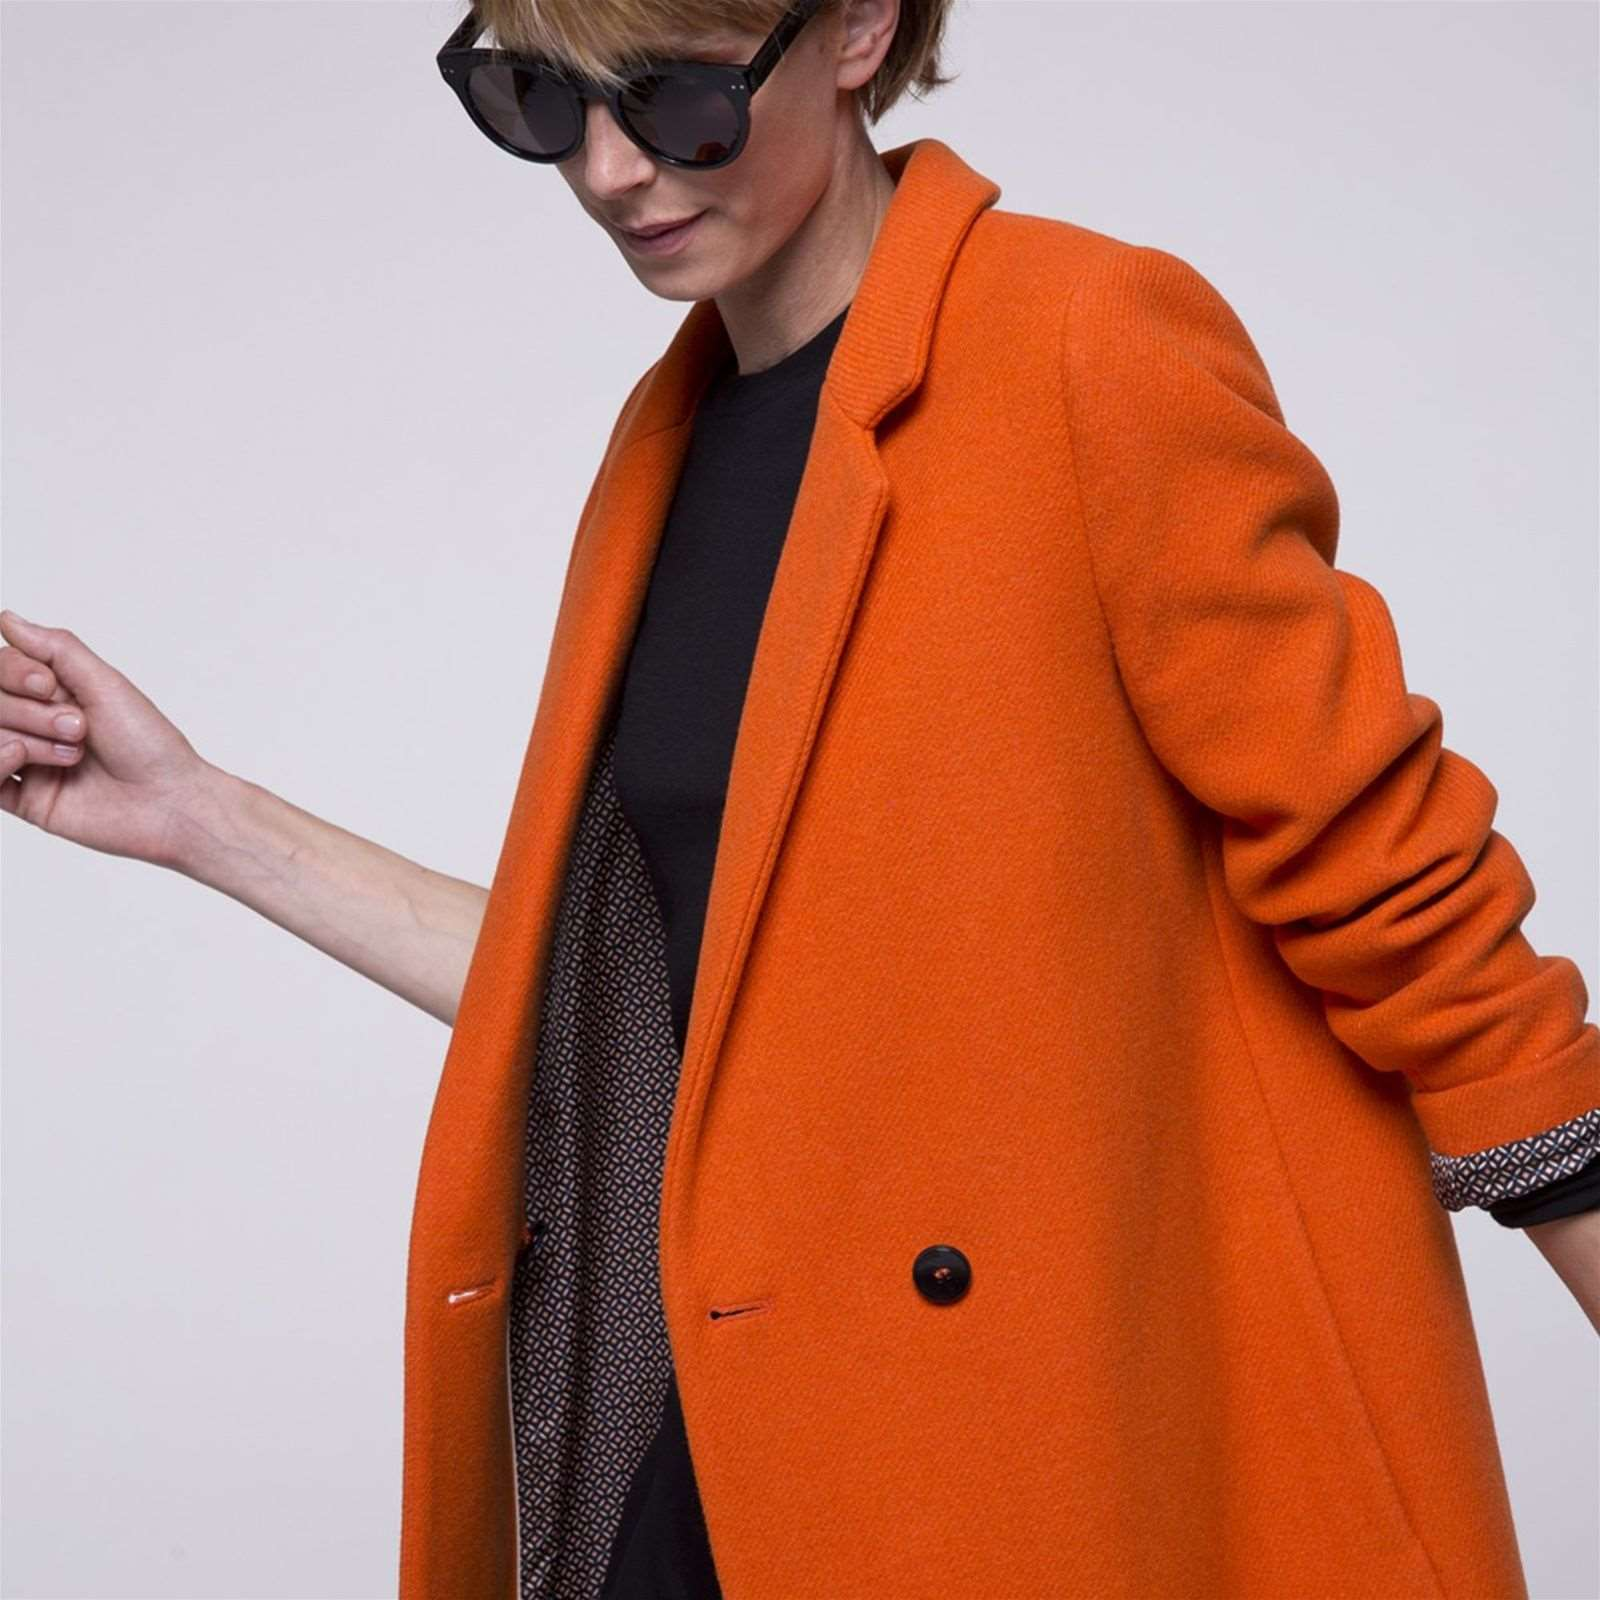 Trench and coat Manteau en laine mélangée - orange   BrandAlley c93102269d97